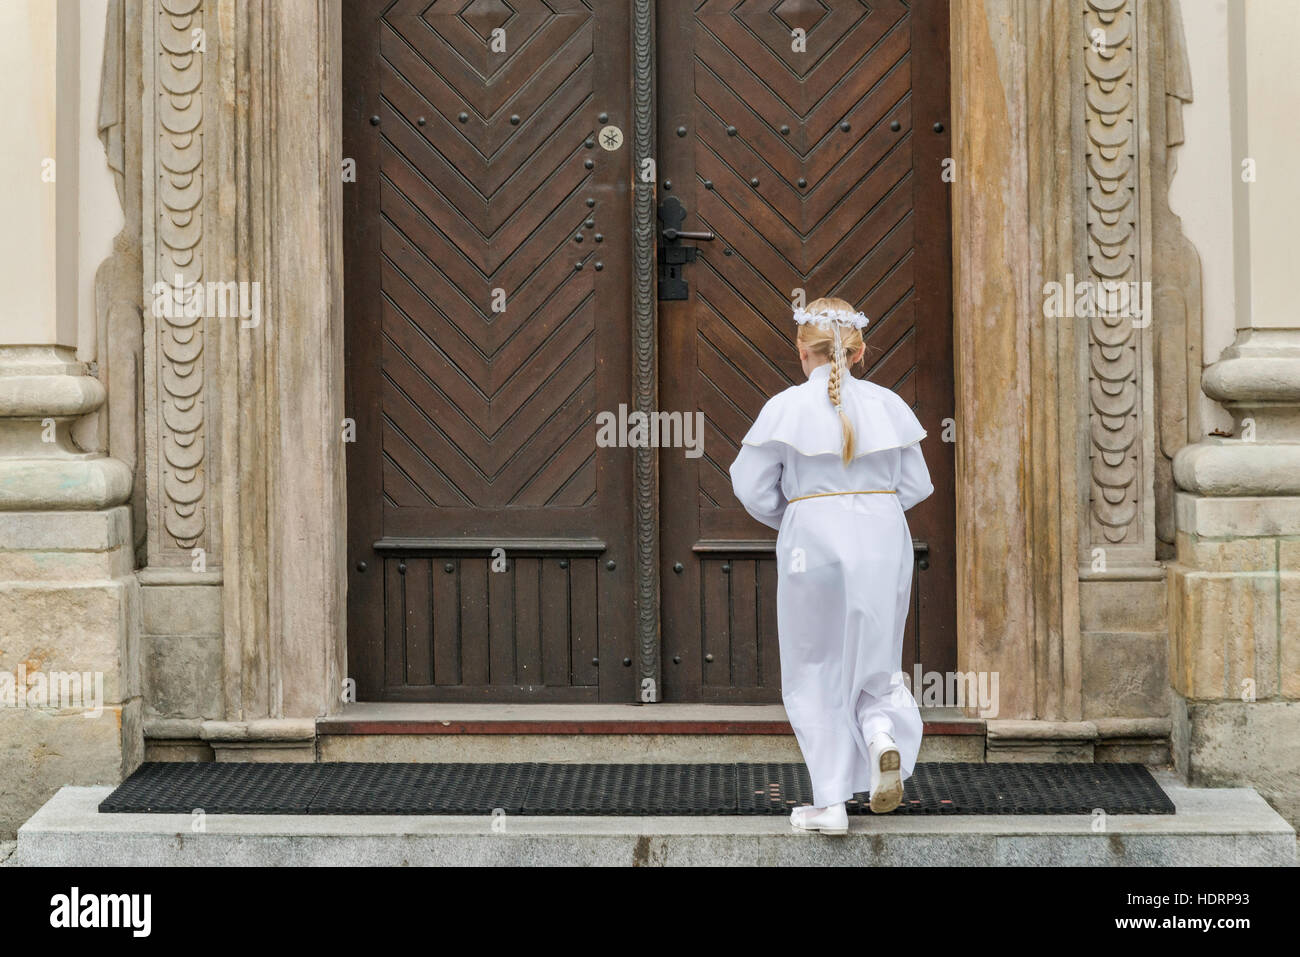 Girl entering church for First Holy Communion event, Cathedral Basilica in Lowicz, Mazovia, Poland - Stock Image